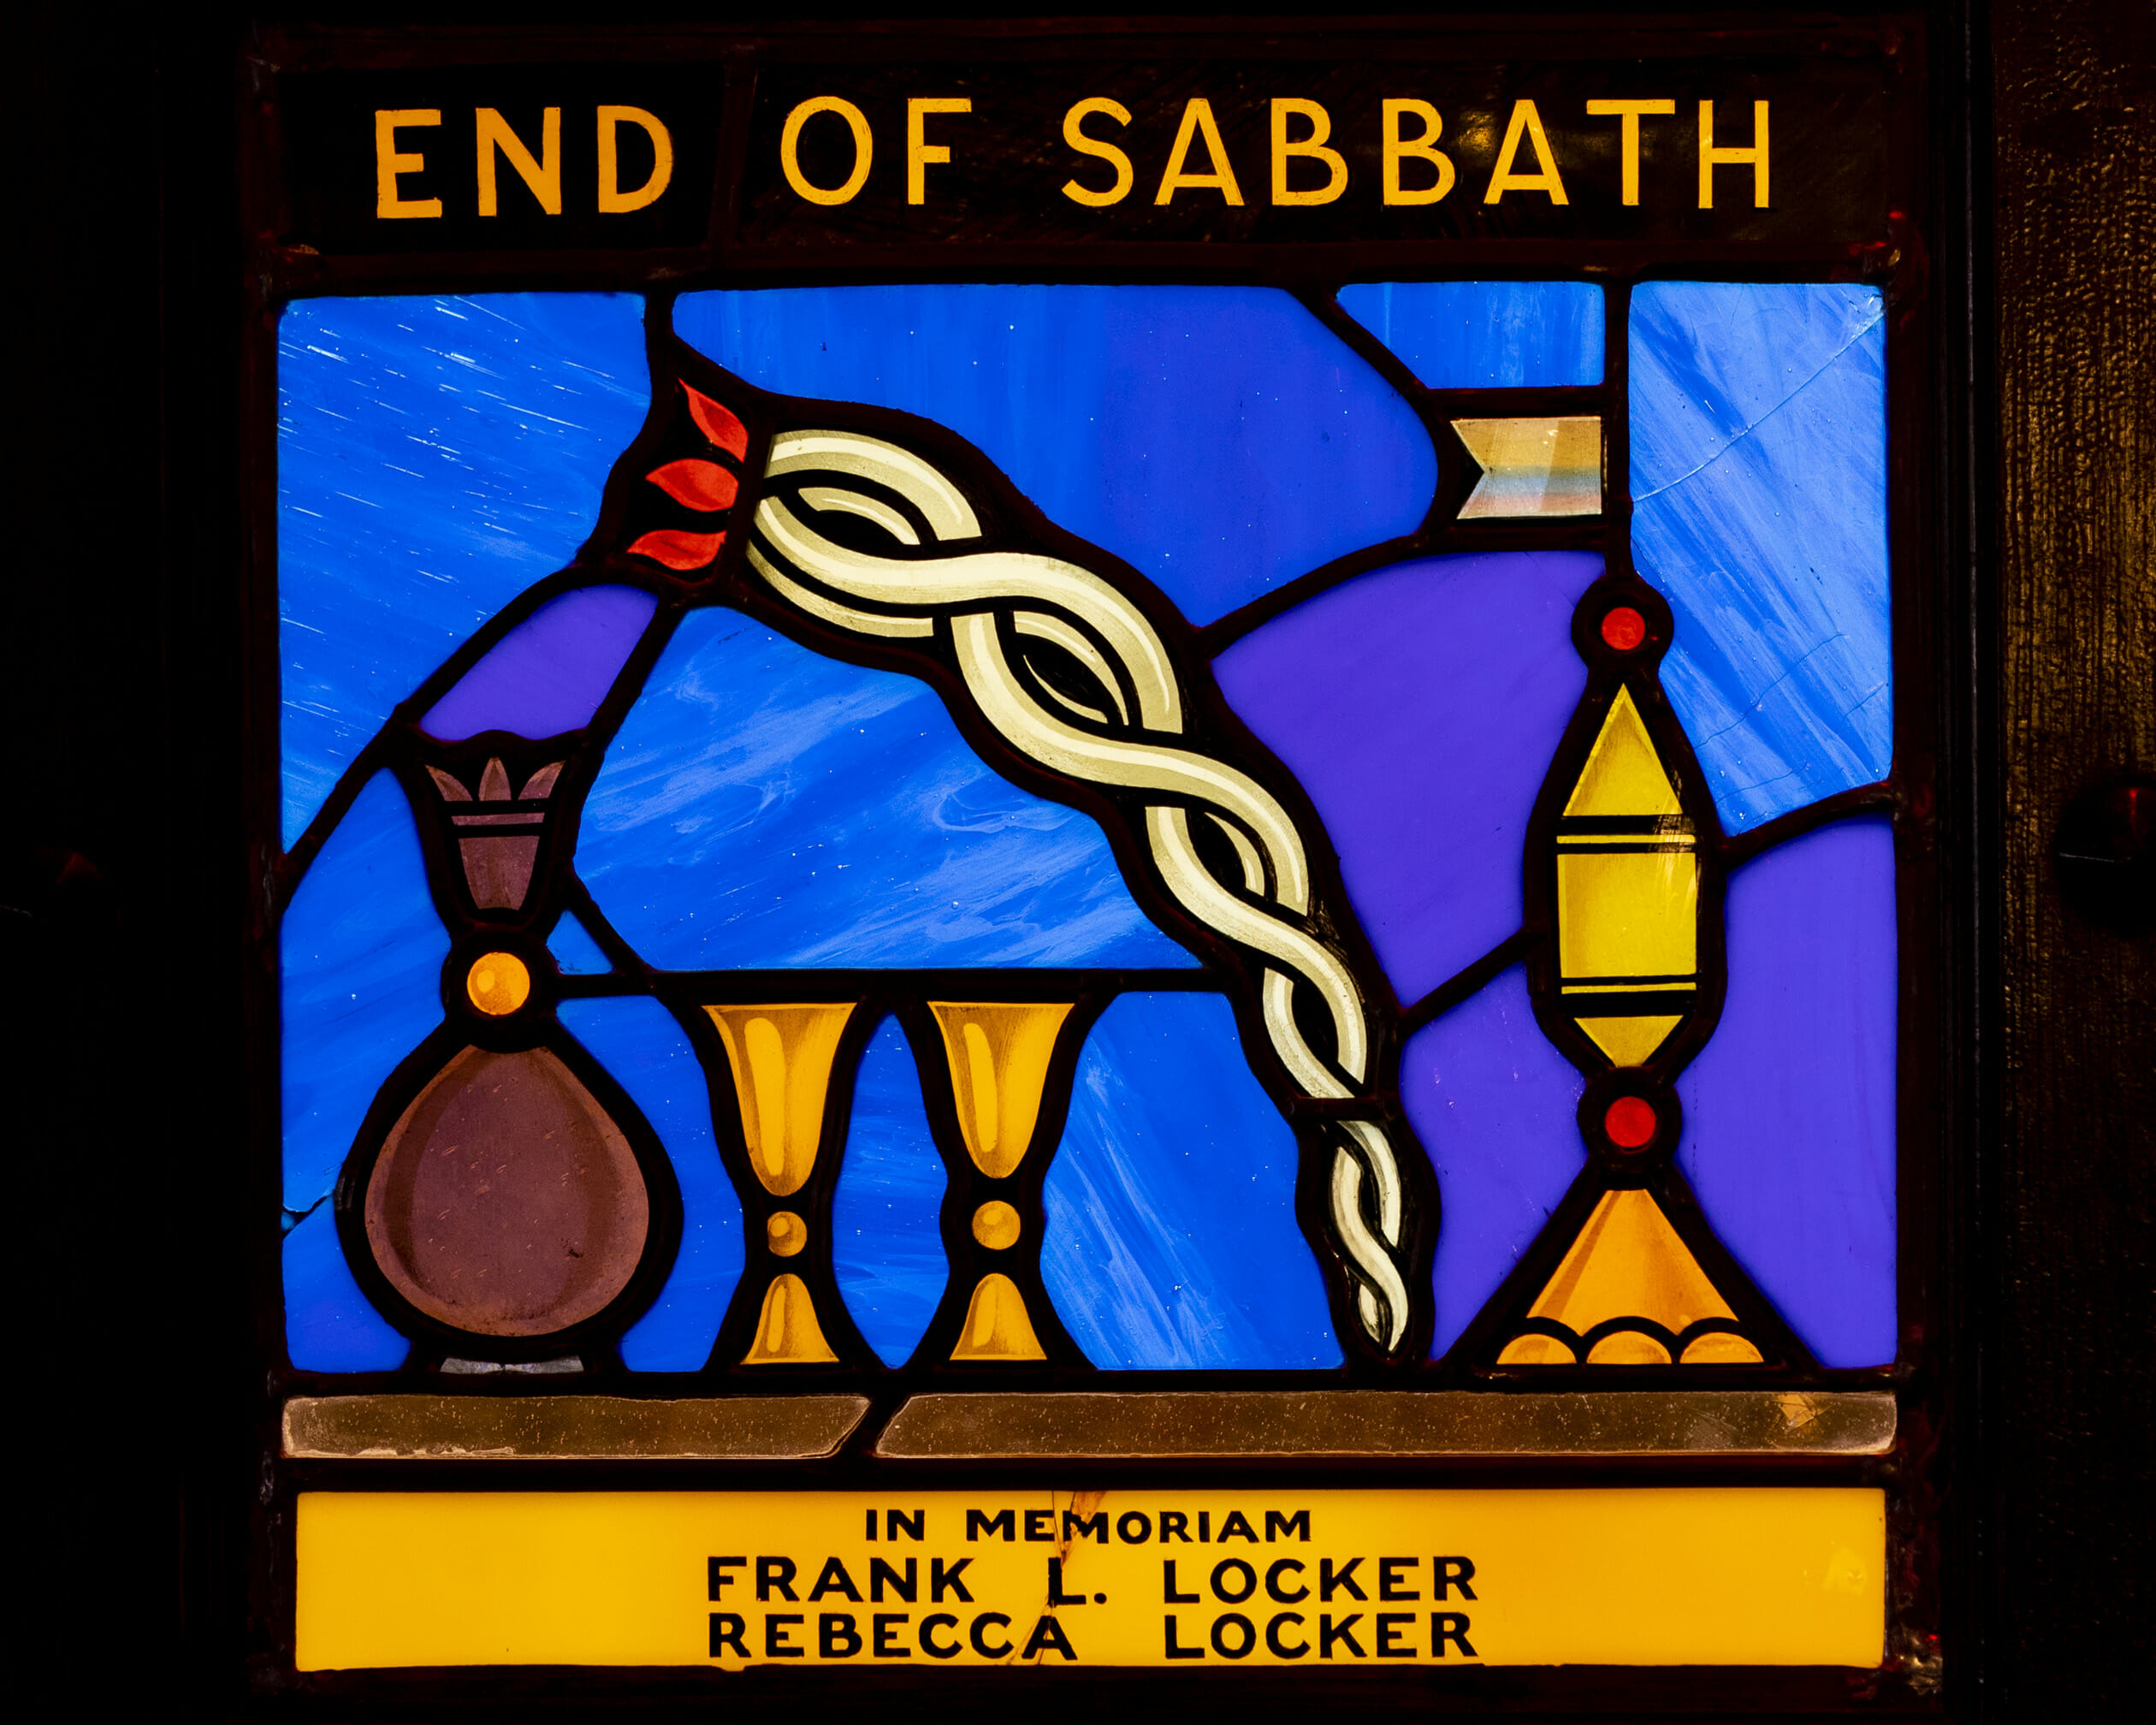 end of sabbath - in memoriam frank & rebecca locker